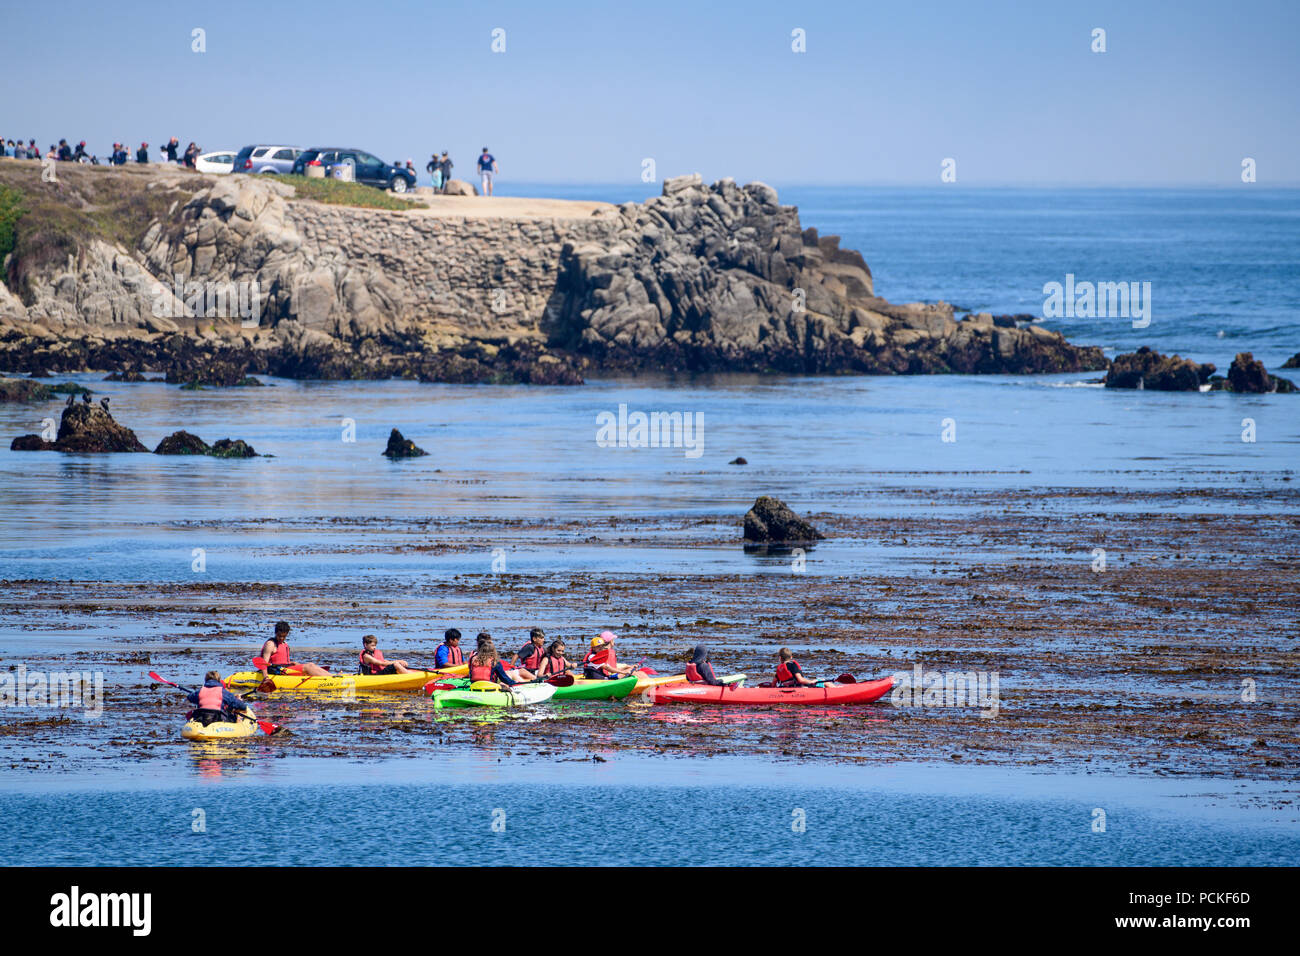 A group of Cormorants watch one of the kayak tours are a popular tourist activity in the Pacific Ocean along the coast of Pacific Grove and Monterey w - Stock Image